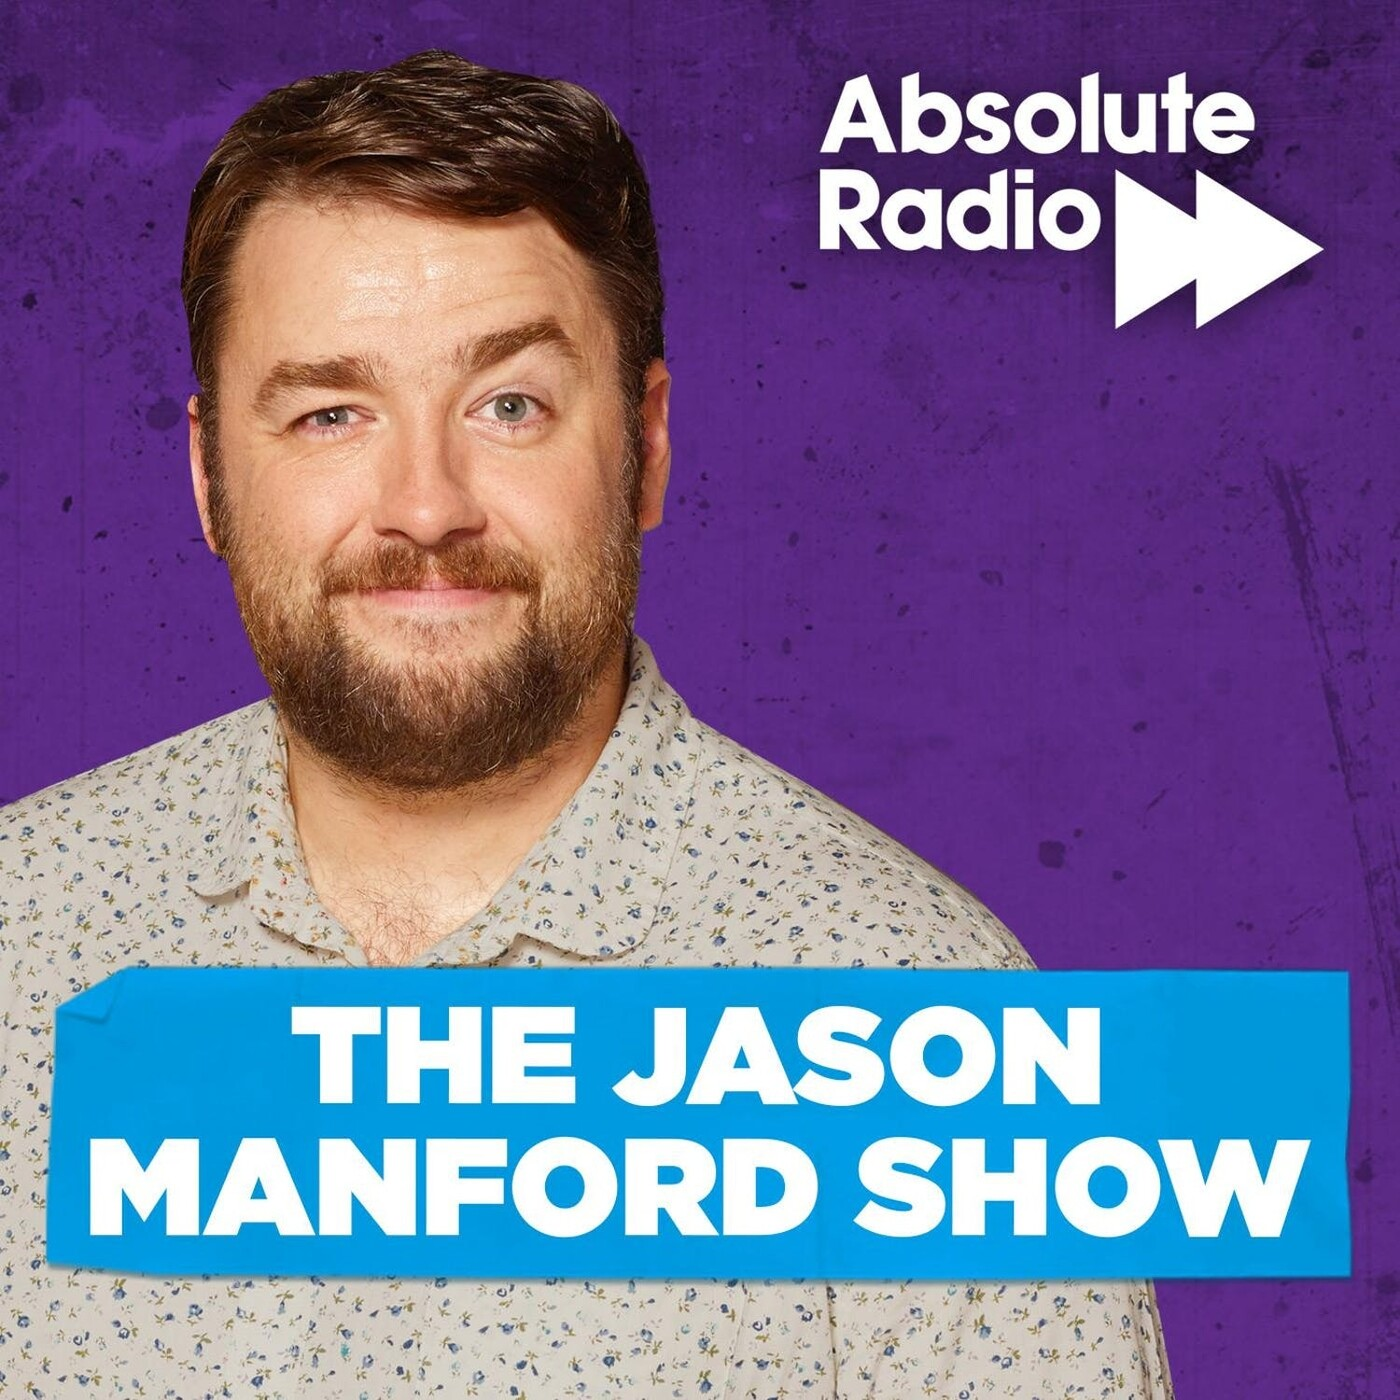 The Jason Manford Show - With Steve Edge (In Isolation Part 12)